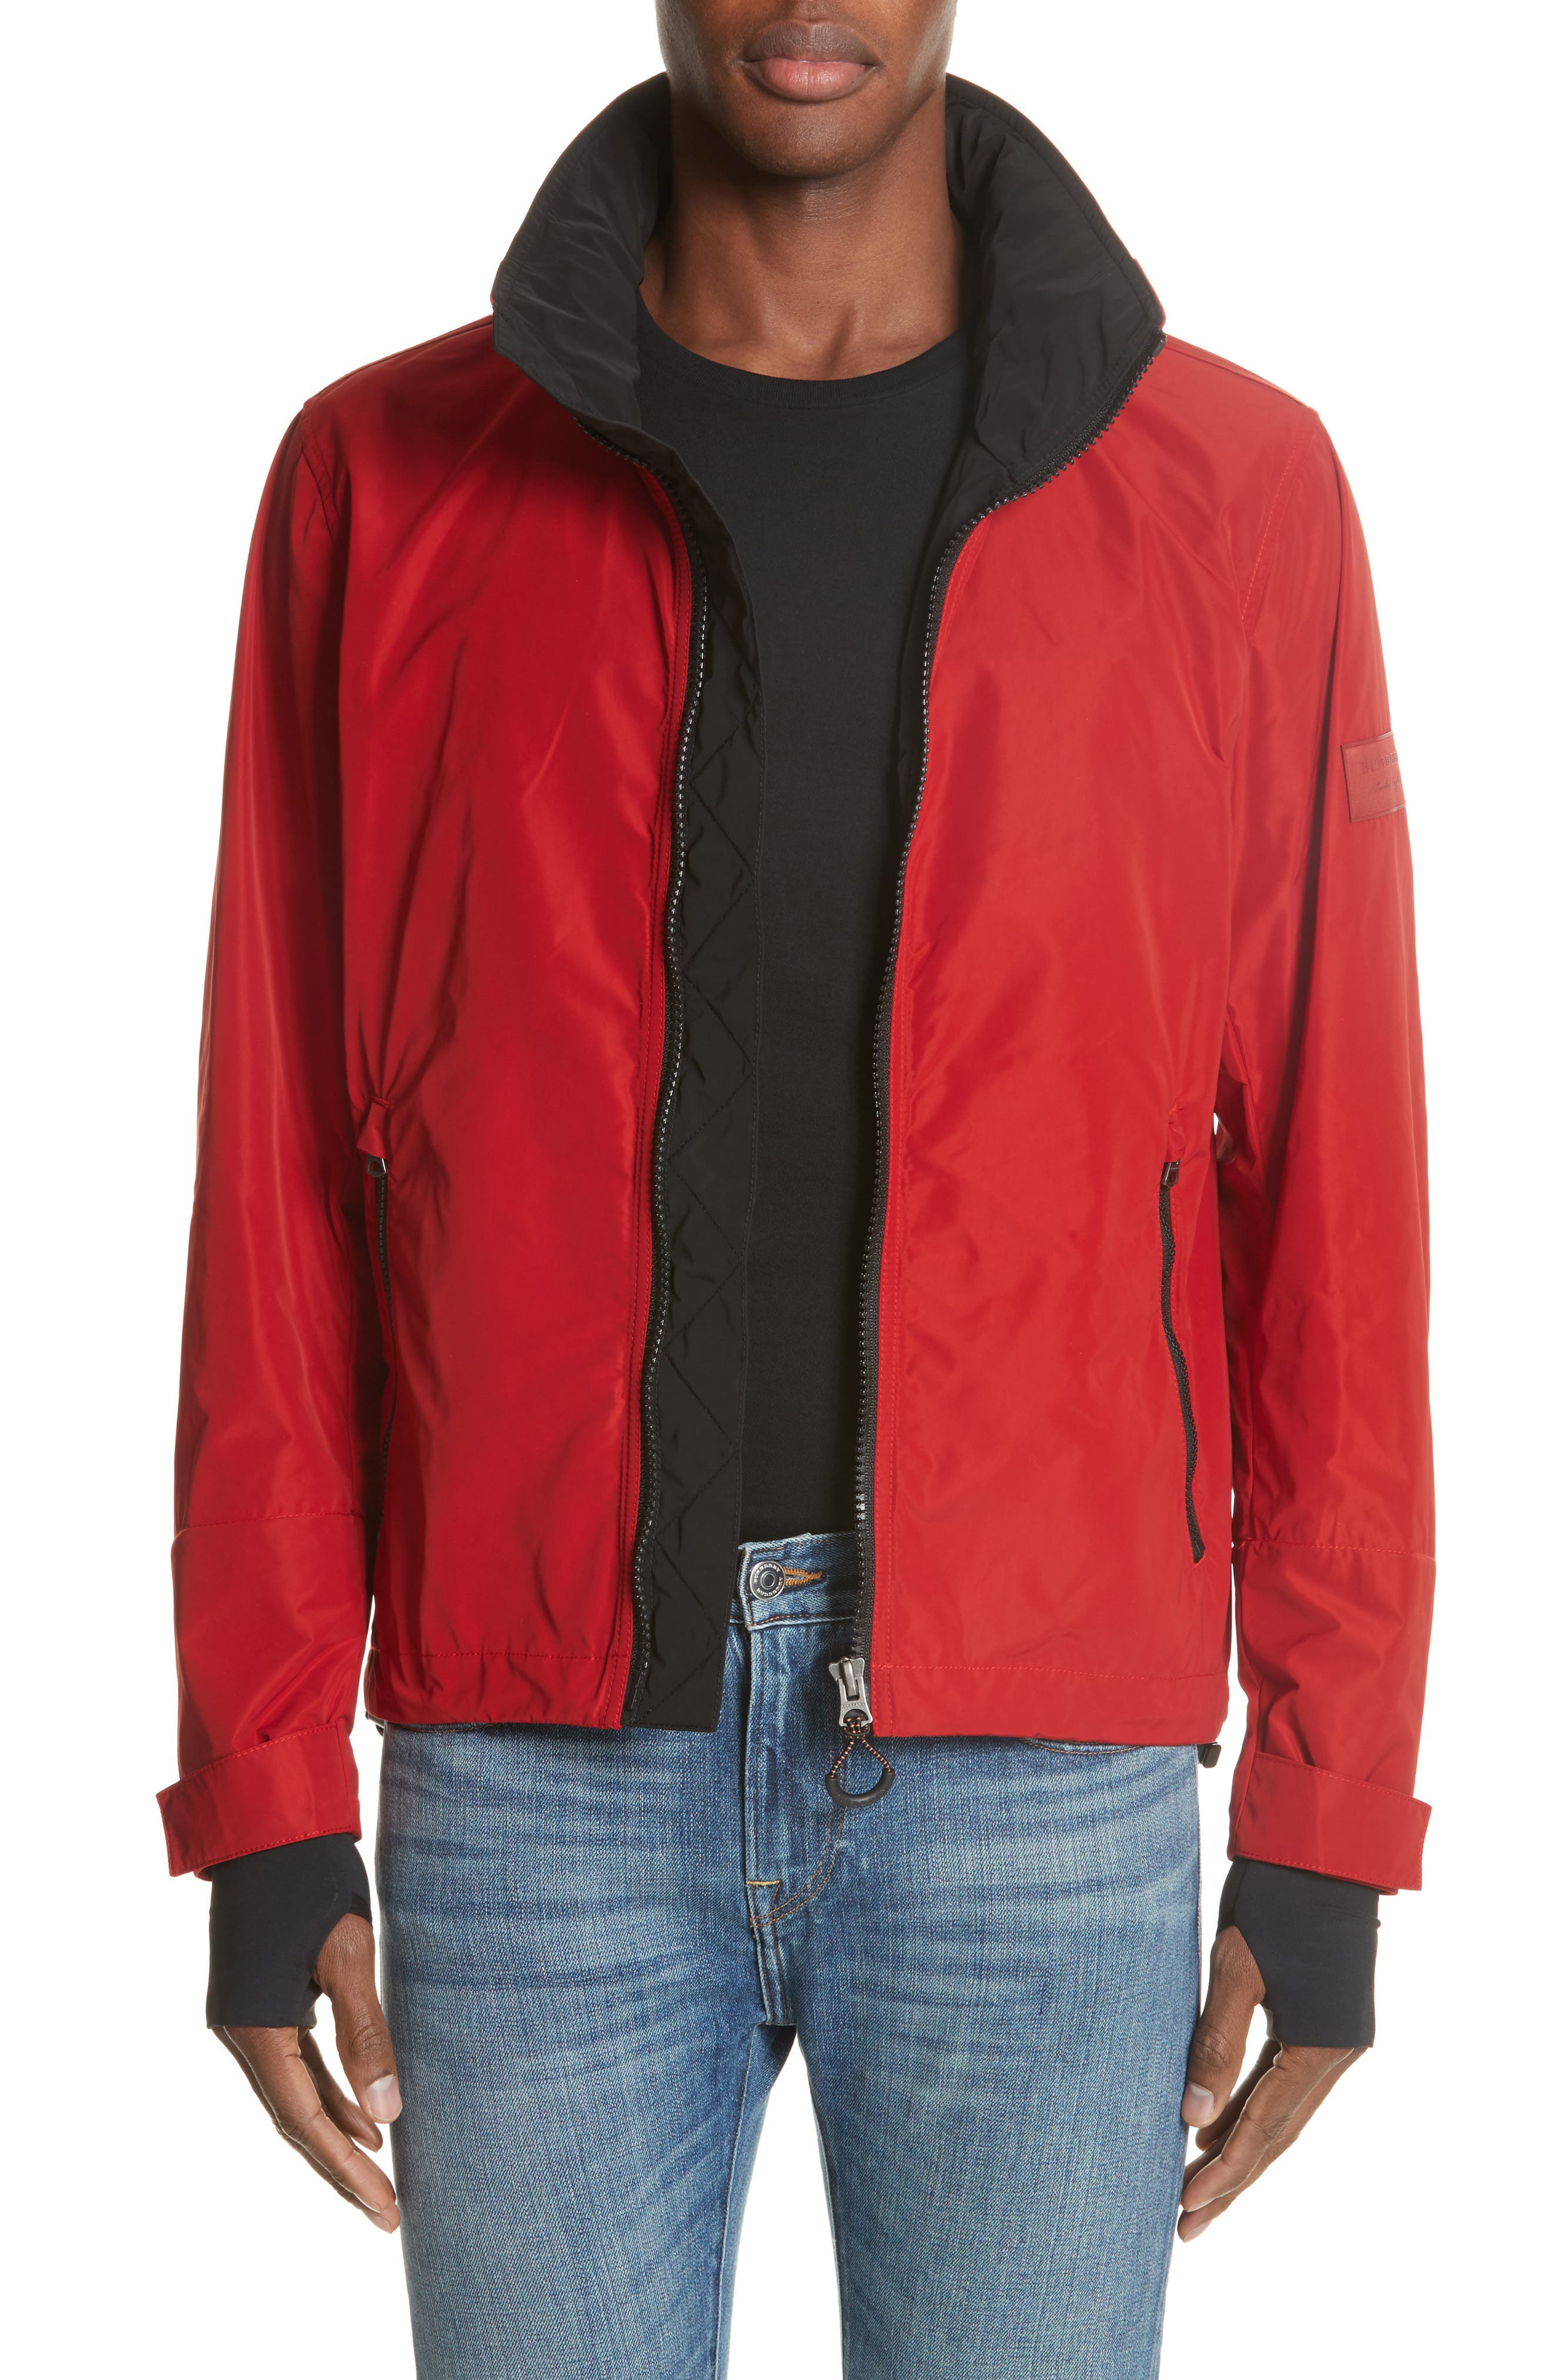 Headson Standard Fit Jacket,                             Main thumbnail 1, color,